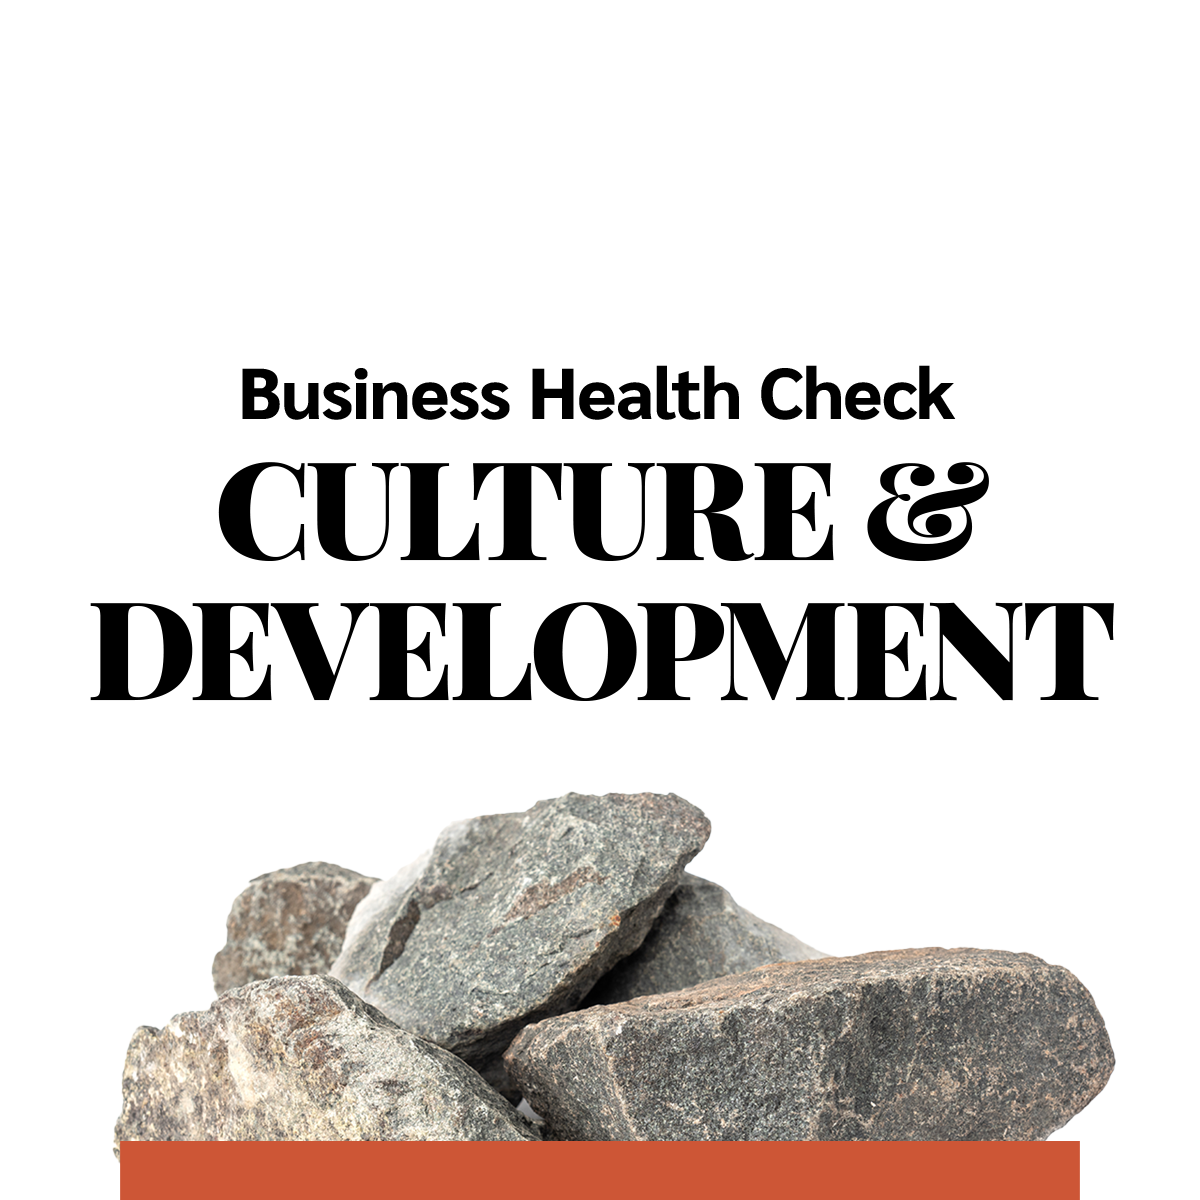 Business Health Check - Culture and development - BASIC